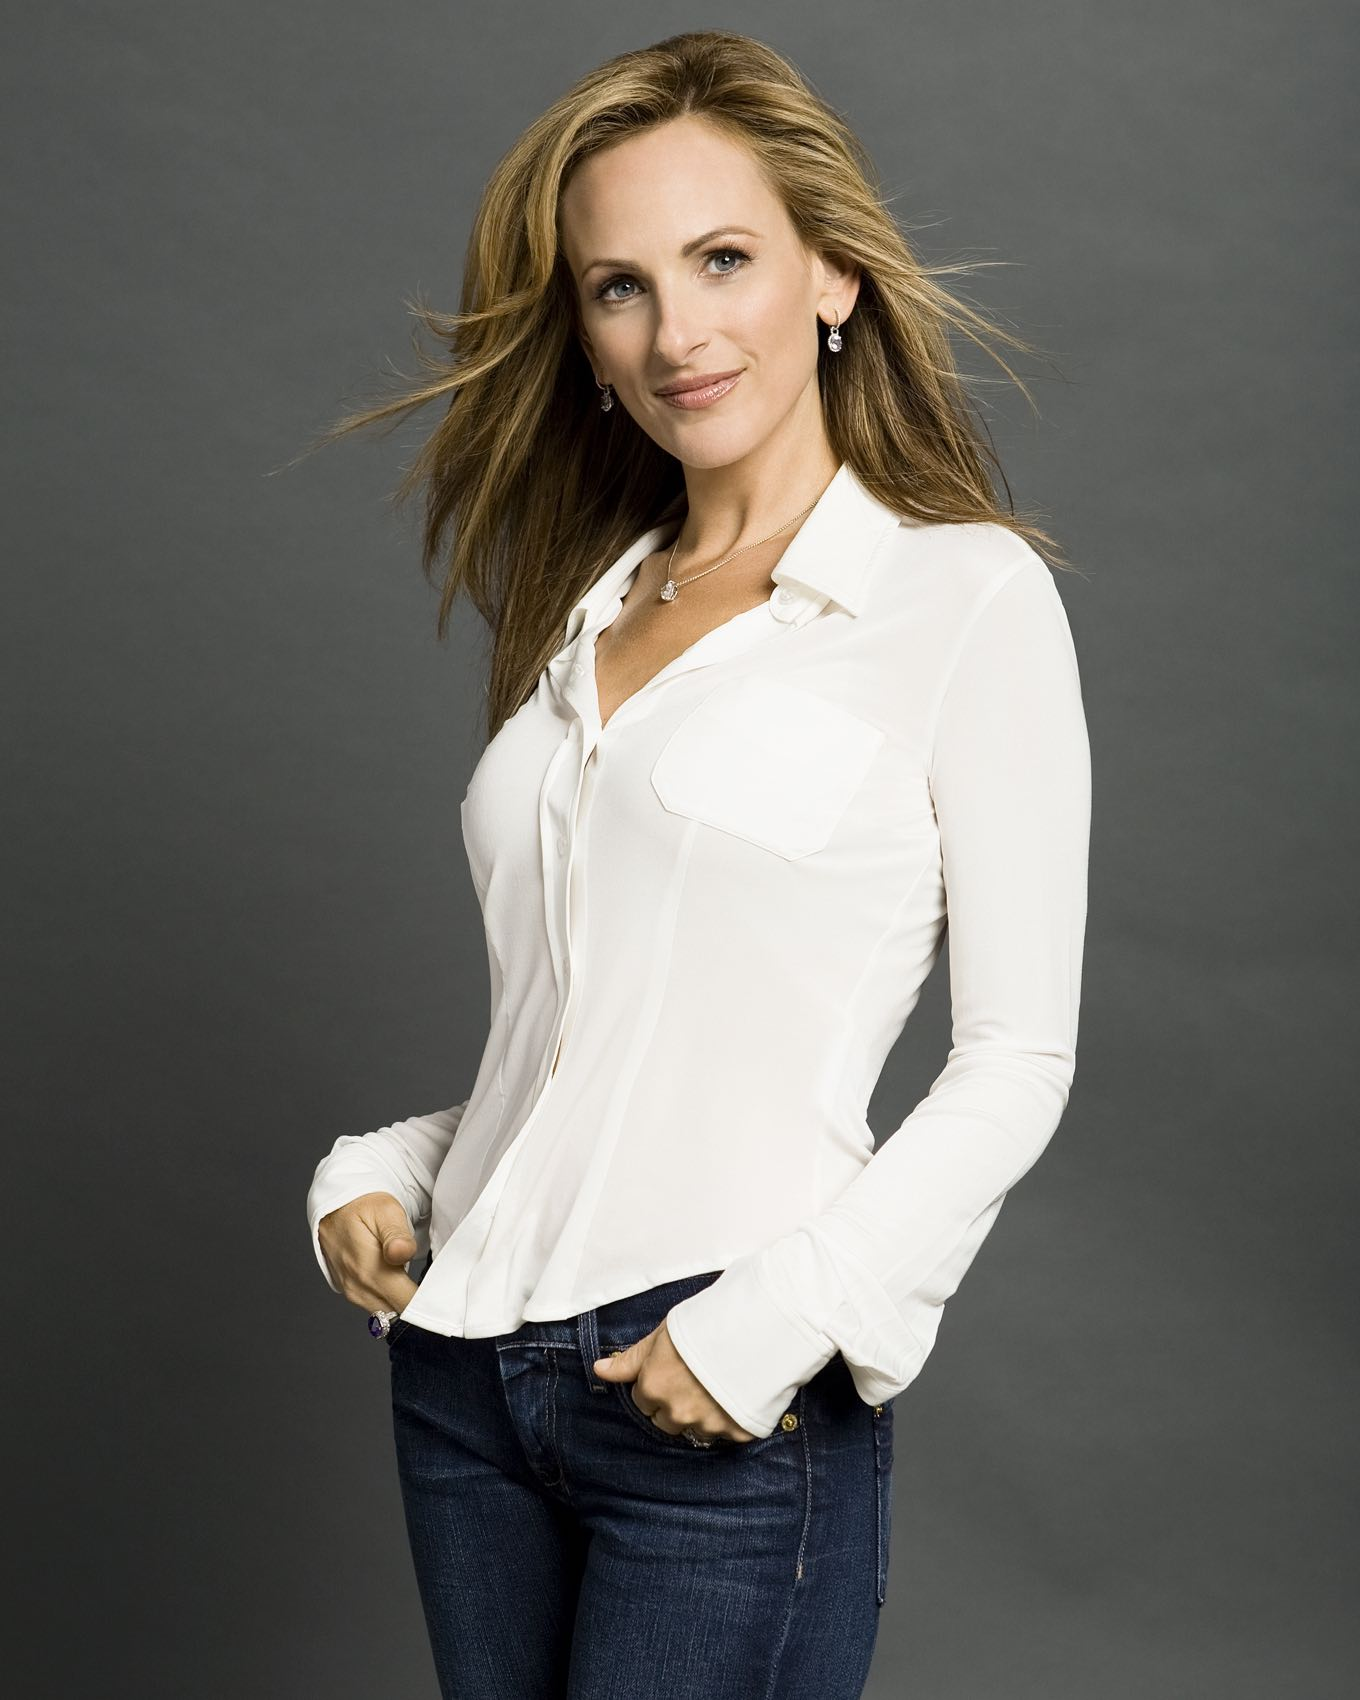 Master Ticket >> Interview with Academy & Oscar Award Winning Marlee Matlin - Ticketmaster Insider